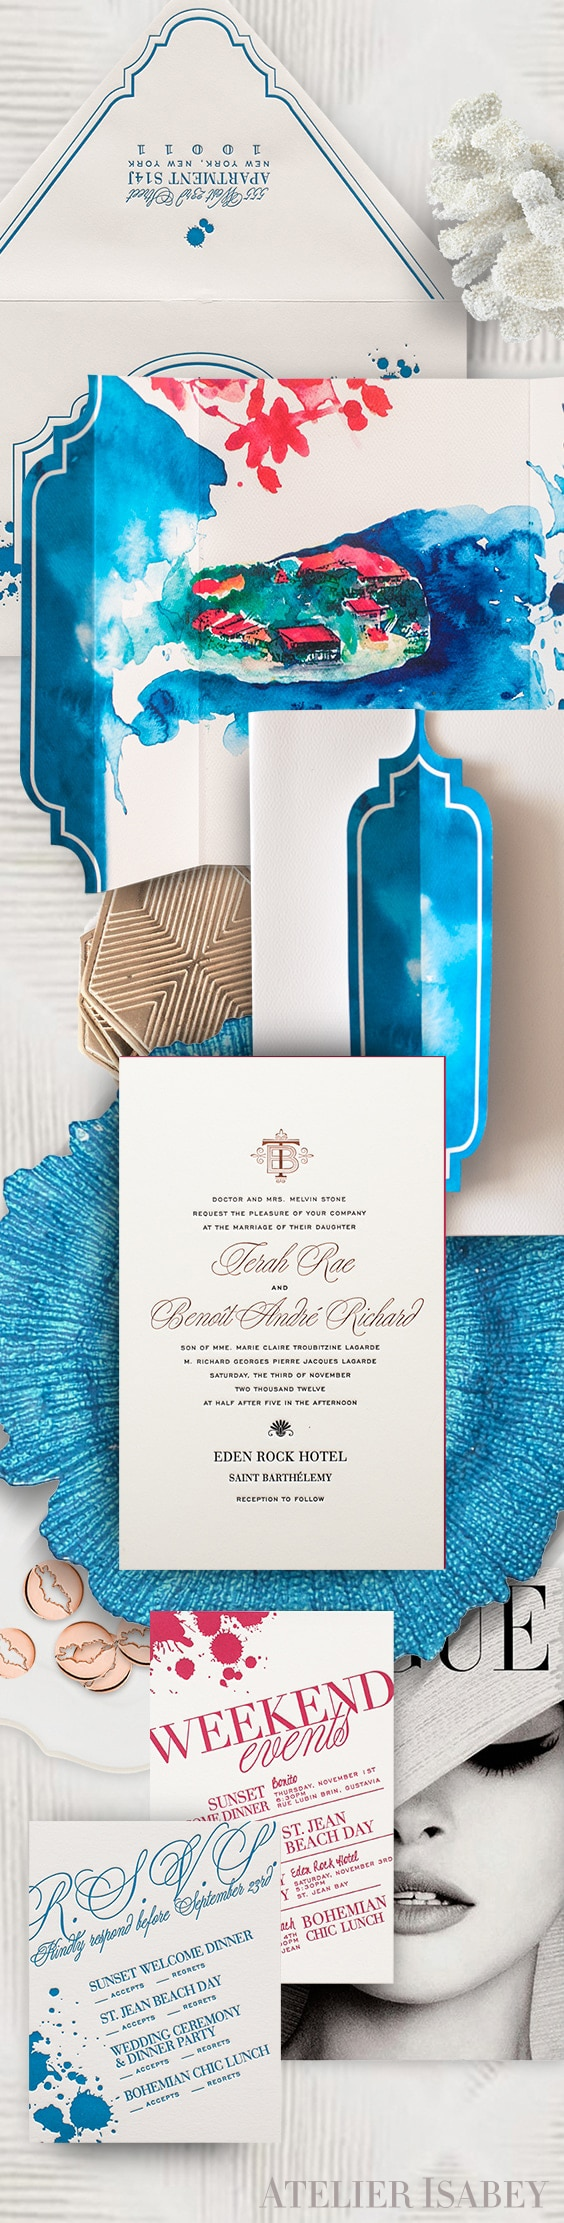 Eden Rock Saint Barts watercolor wedding invitation | By Atelier Isabey